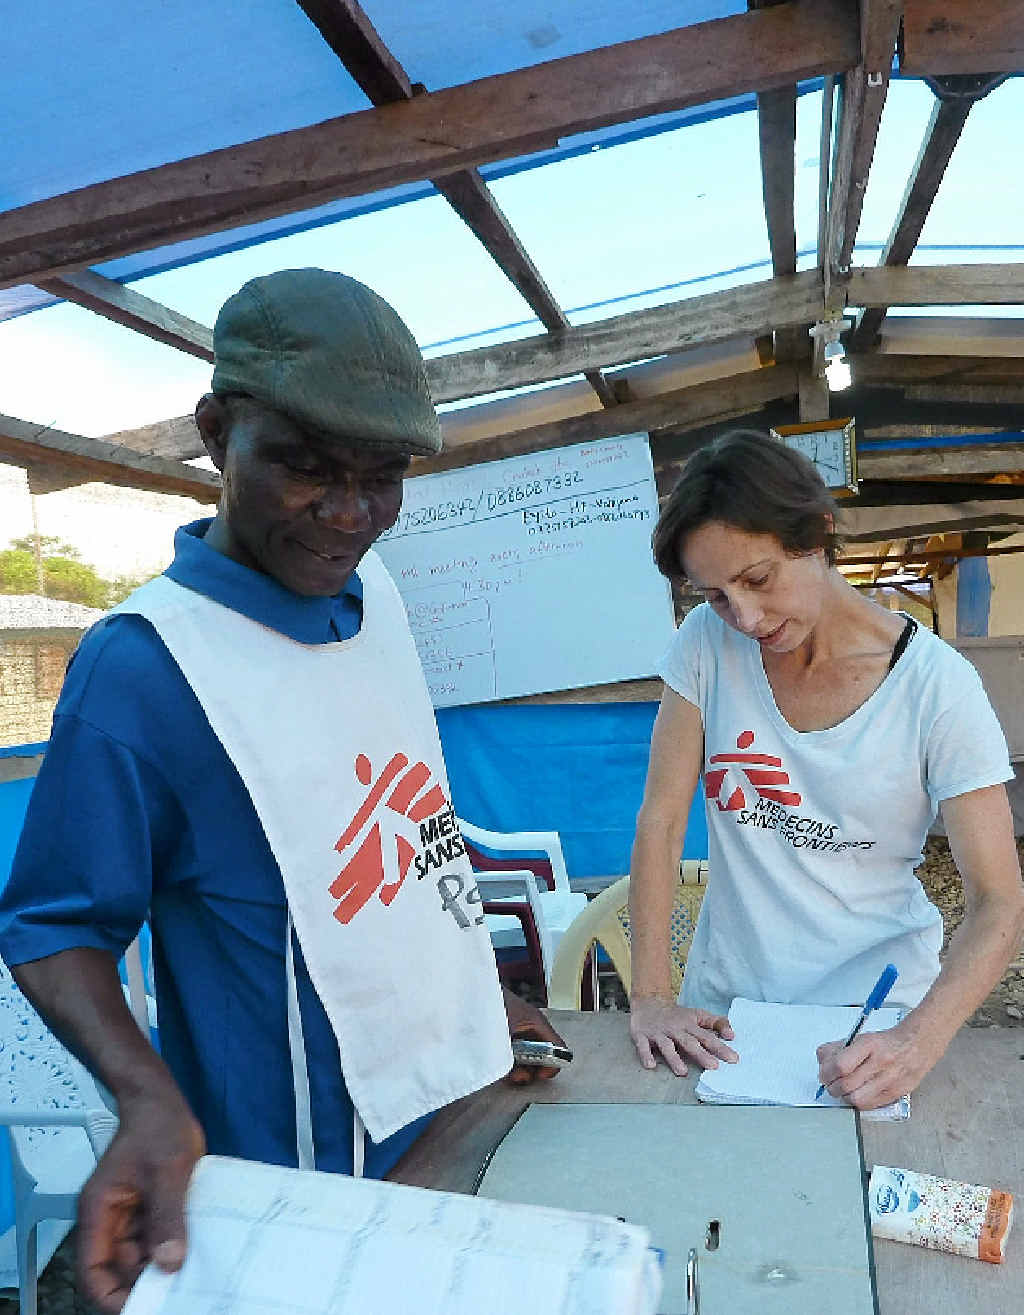 FRONT LINE: Former Ballina resident and epidemiologist Barbara Telfer is working to fight the outbreak of Ebola in West Africa as part of Doctors Without Borders. INSET: A medical worker spraying people being discharged from the Ebola treatment centre in Liberia.